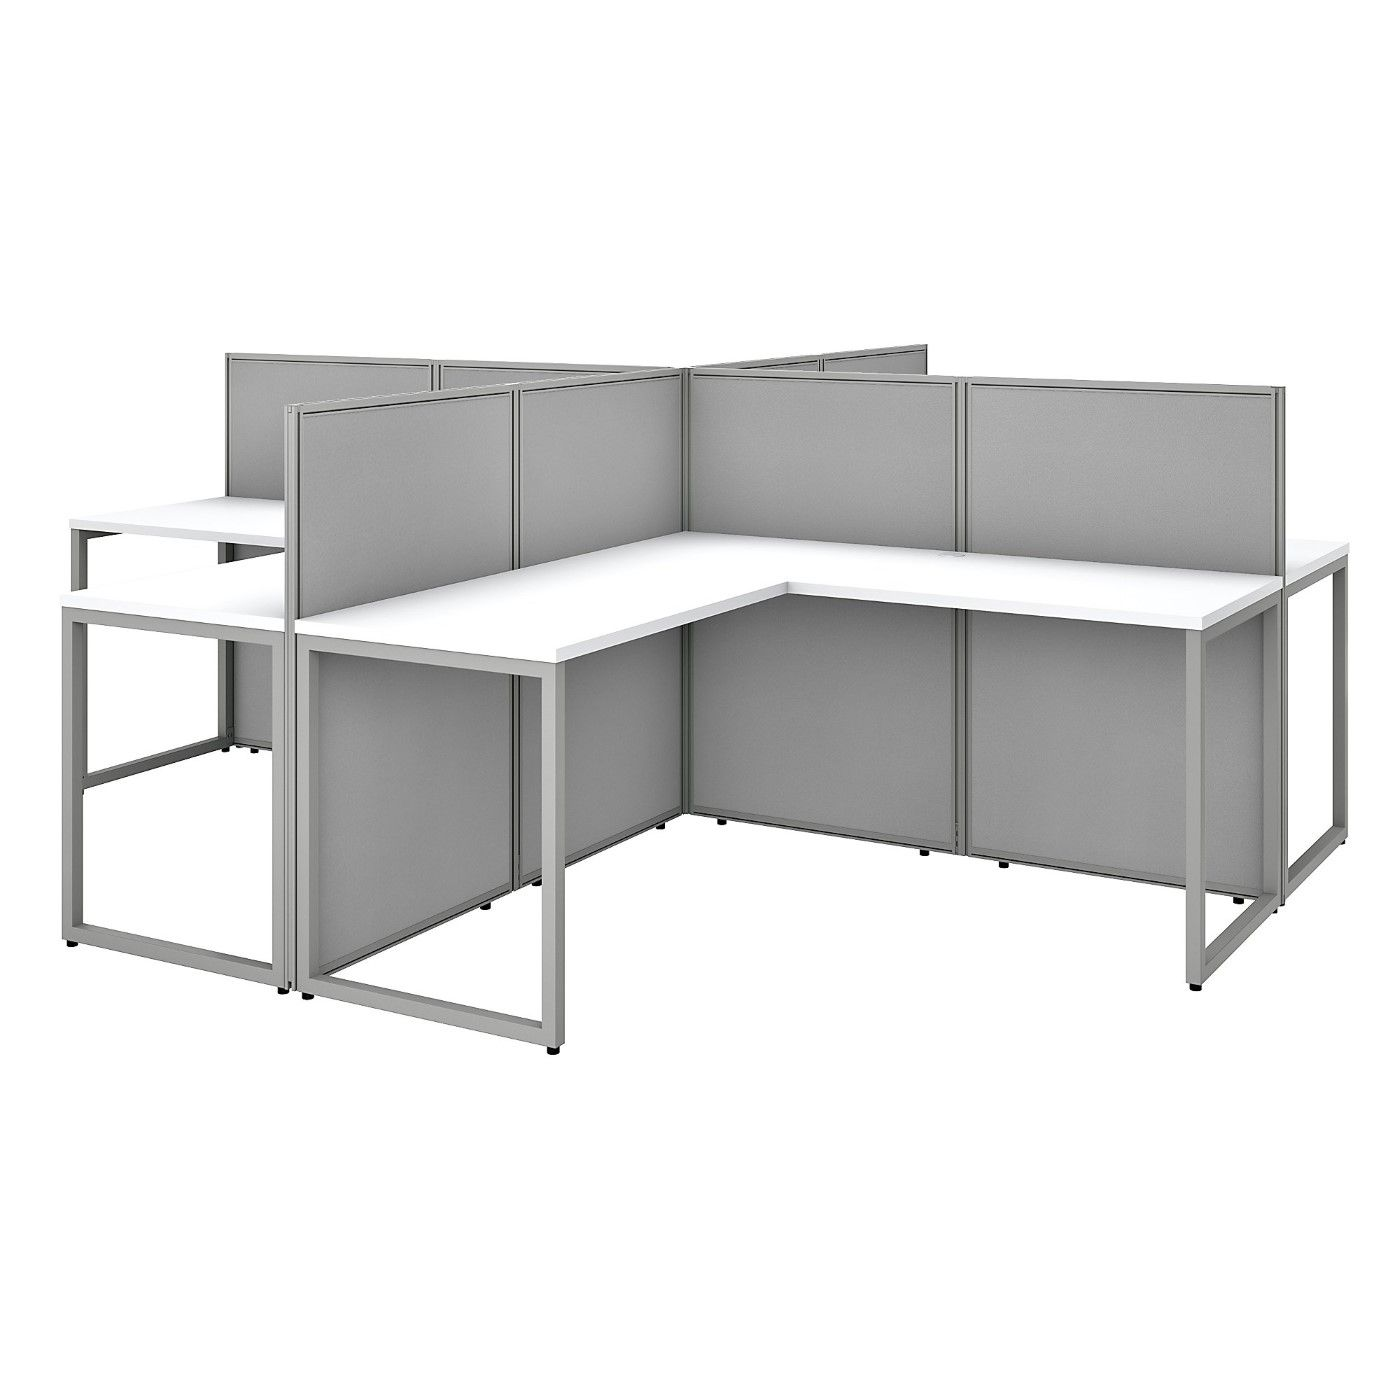 BUSH BUSINESS FURNITURE EASY OFFICE 60W 4 PERSON L SHAPED CUBICLE DESK WORKSTATION WITH 45H PANELS. FREE SHIPPING SALE DEDUCT 10% MORE ENTER '10percent' IN COUPON CODE BOX WHILE CHECKING OUT. ENDS 5-31-20.